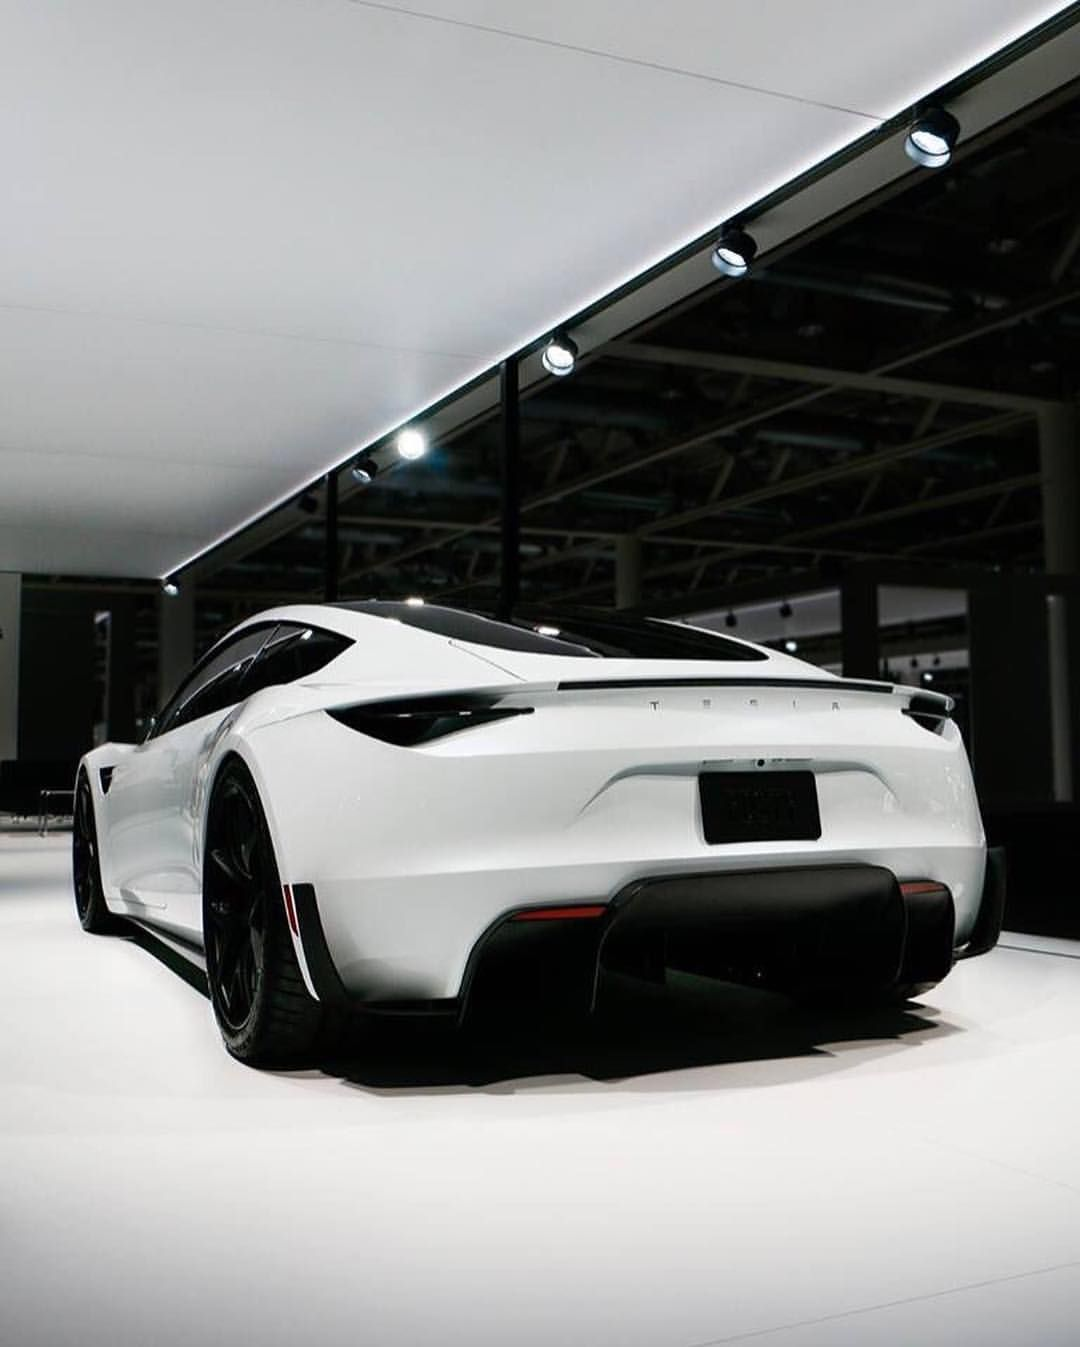 The New Tesla Roadster Looks Straight From The Future Makes Us Think Of Stormtroopers But Better Alux L New Tesla Roadster Tesla Roadster Fast Sports Cars